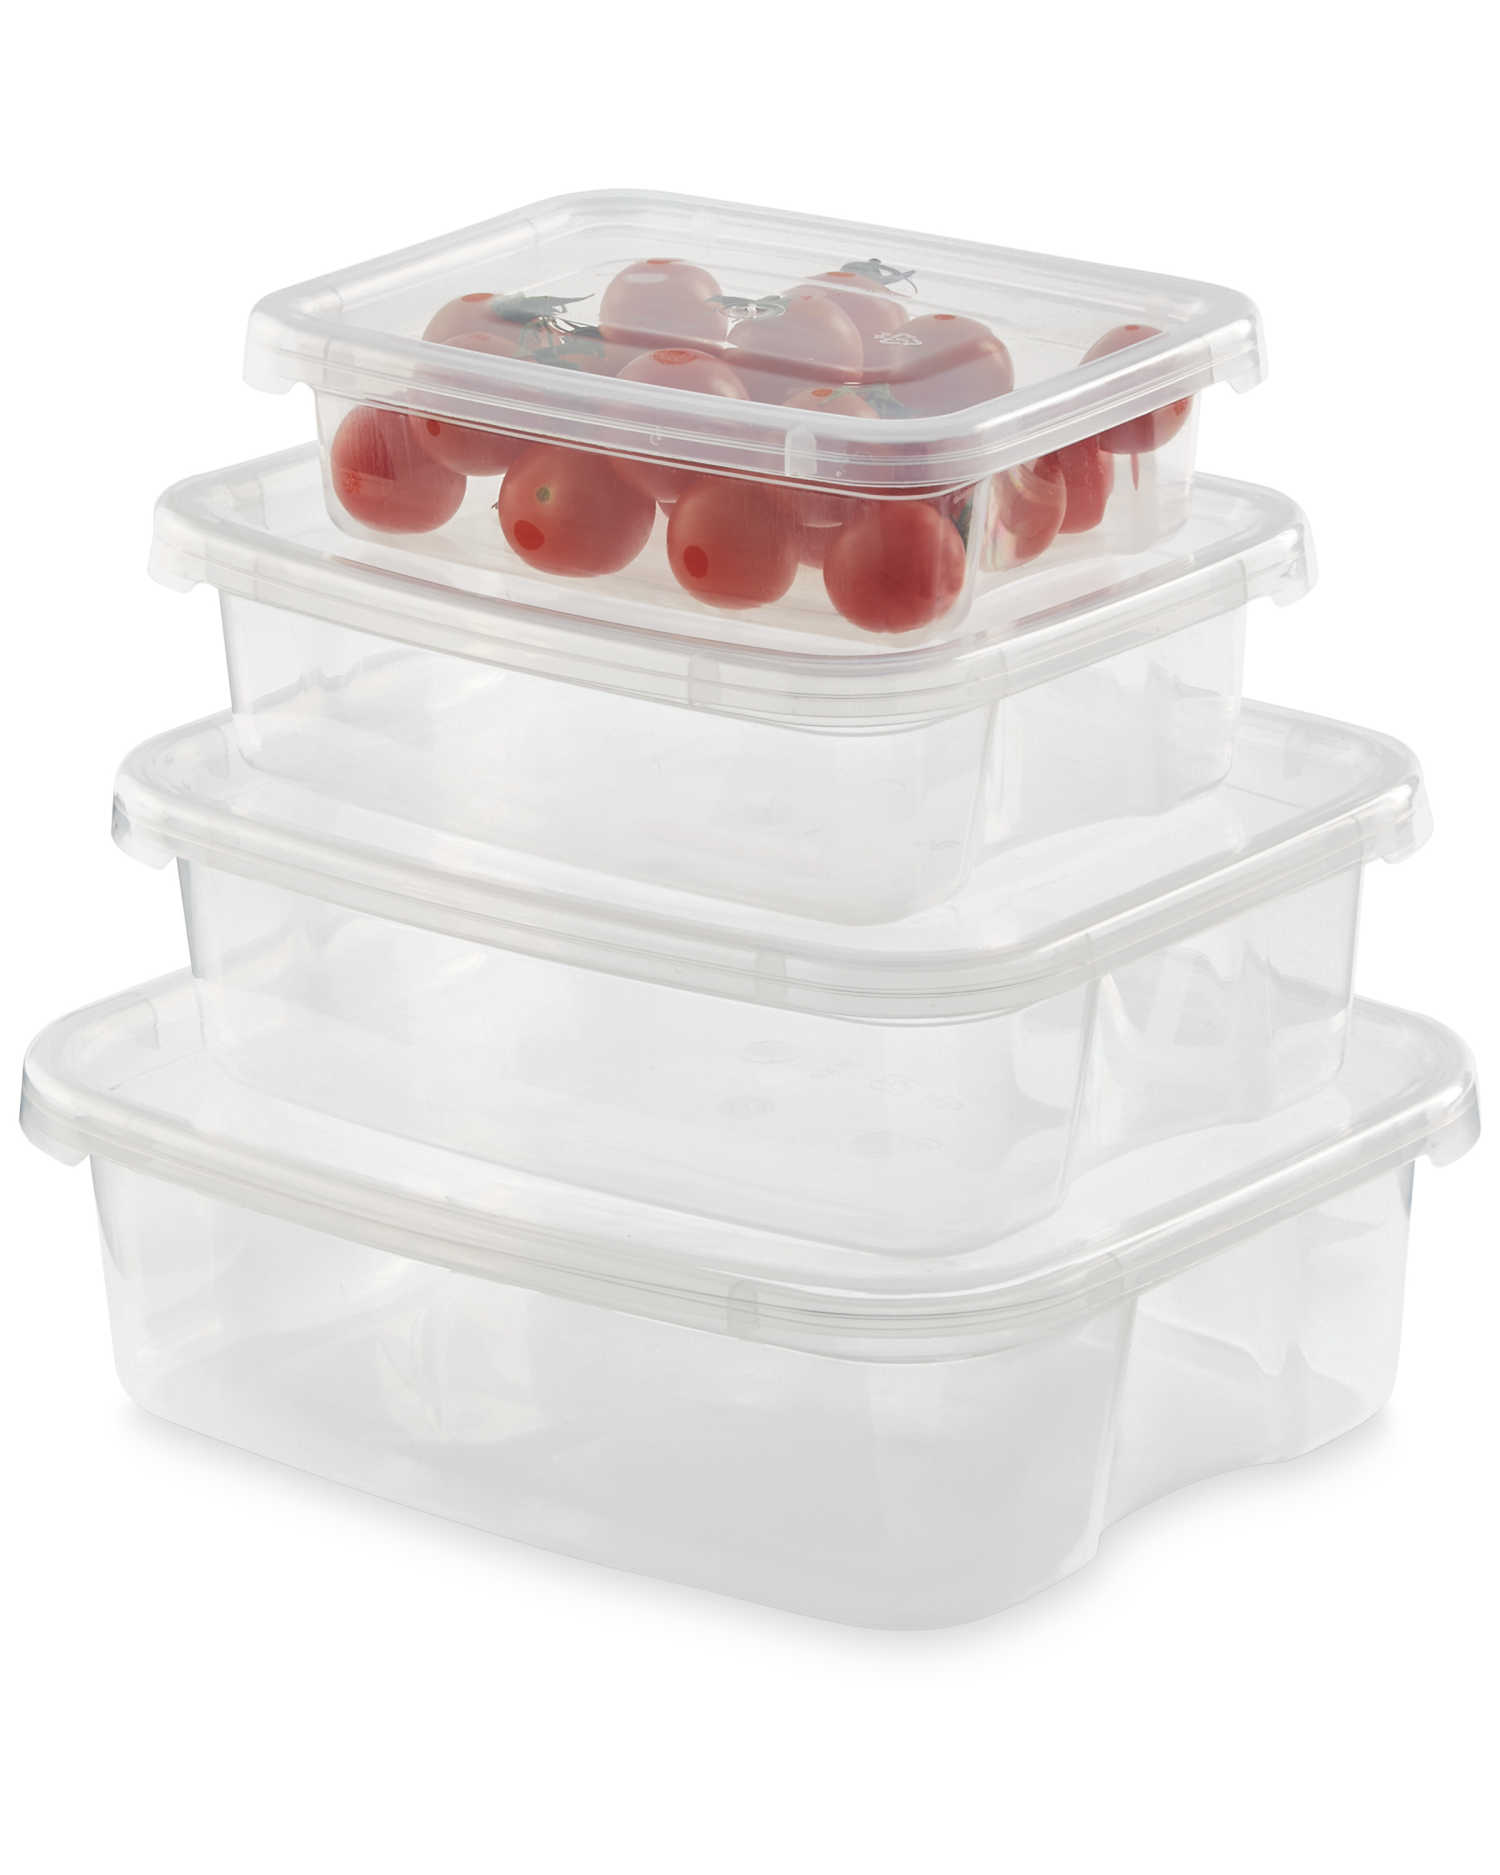 Crofton Food Storage Containers